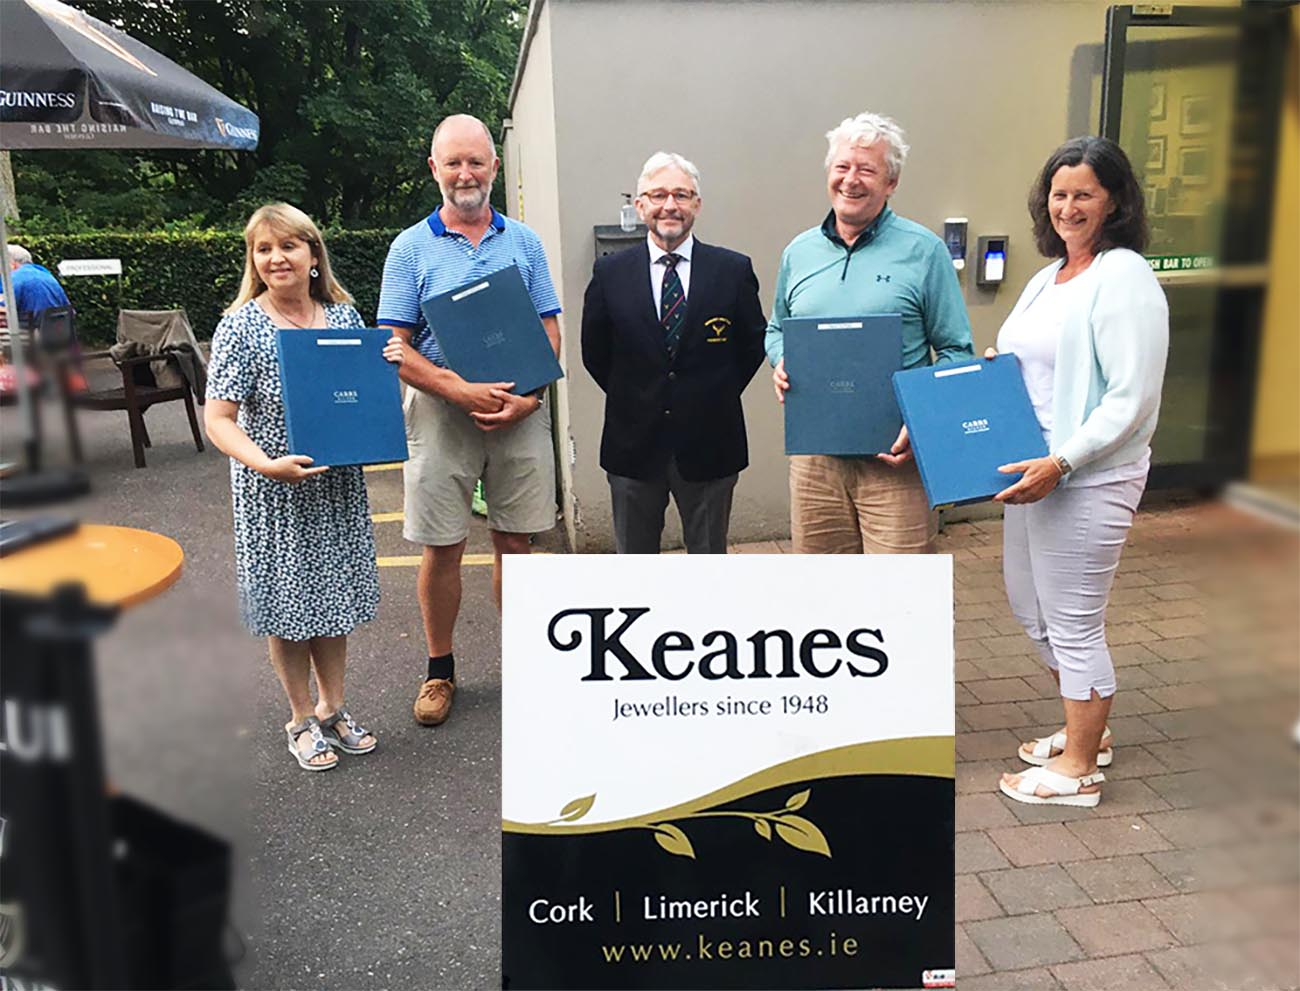 keans mixed fiursomes competition